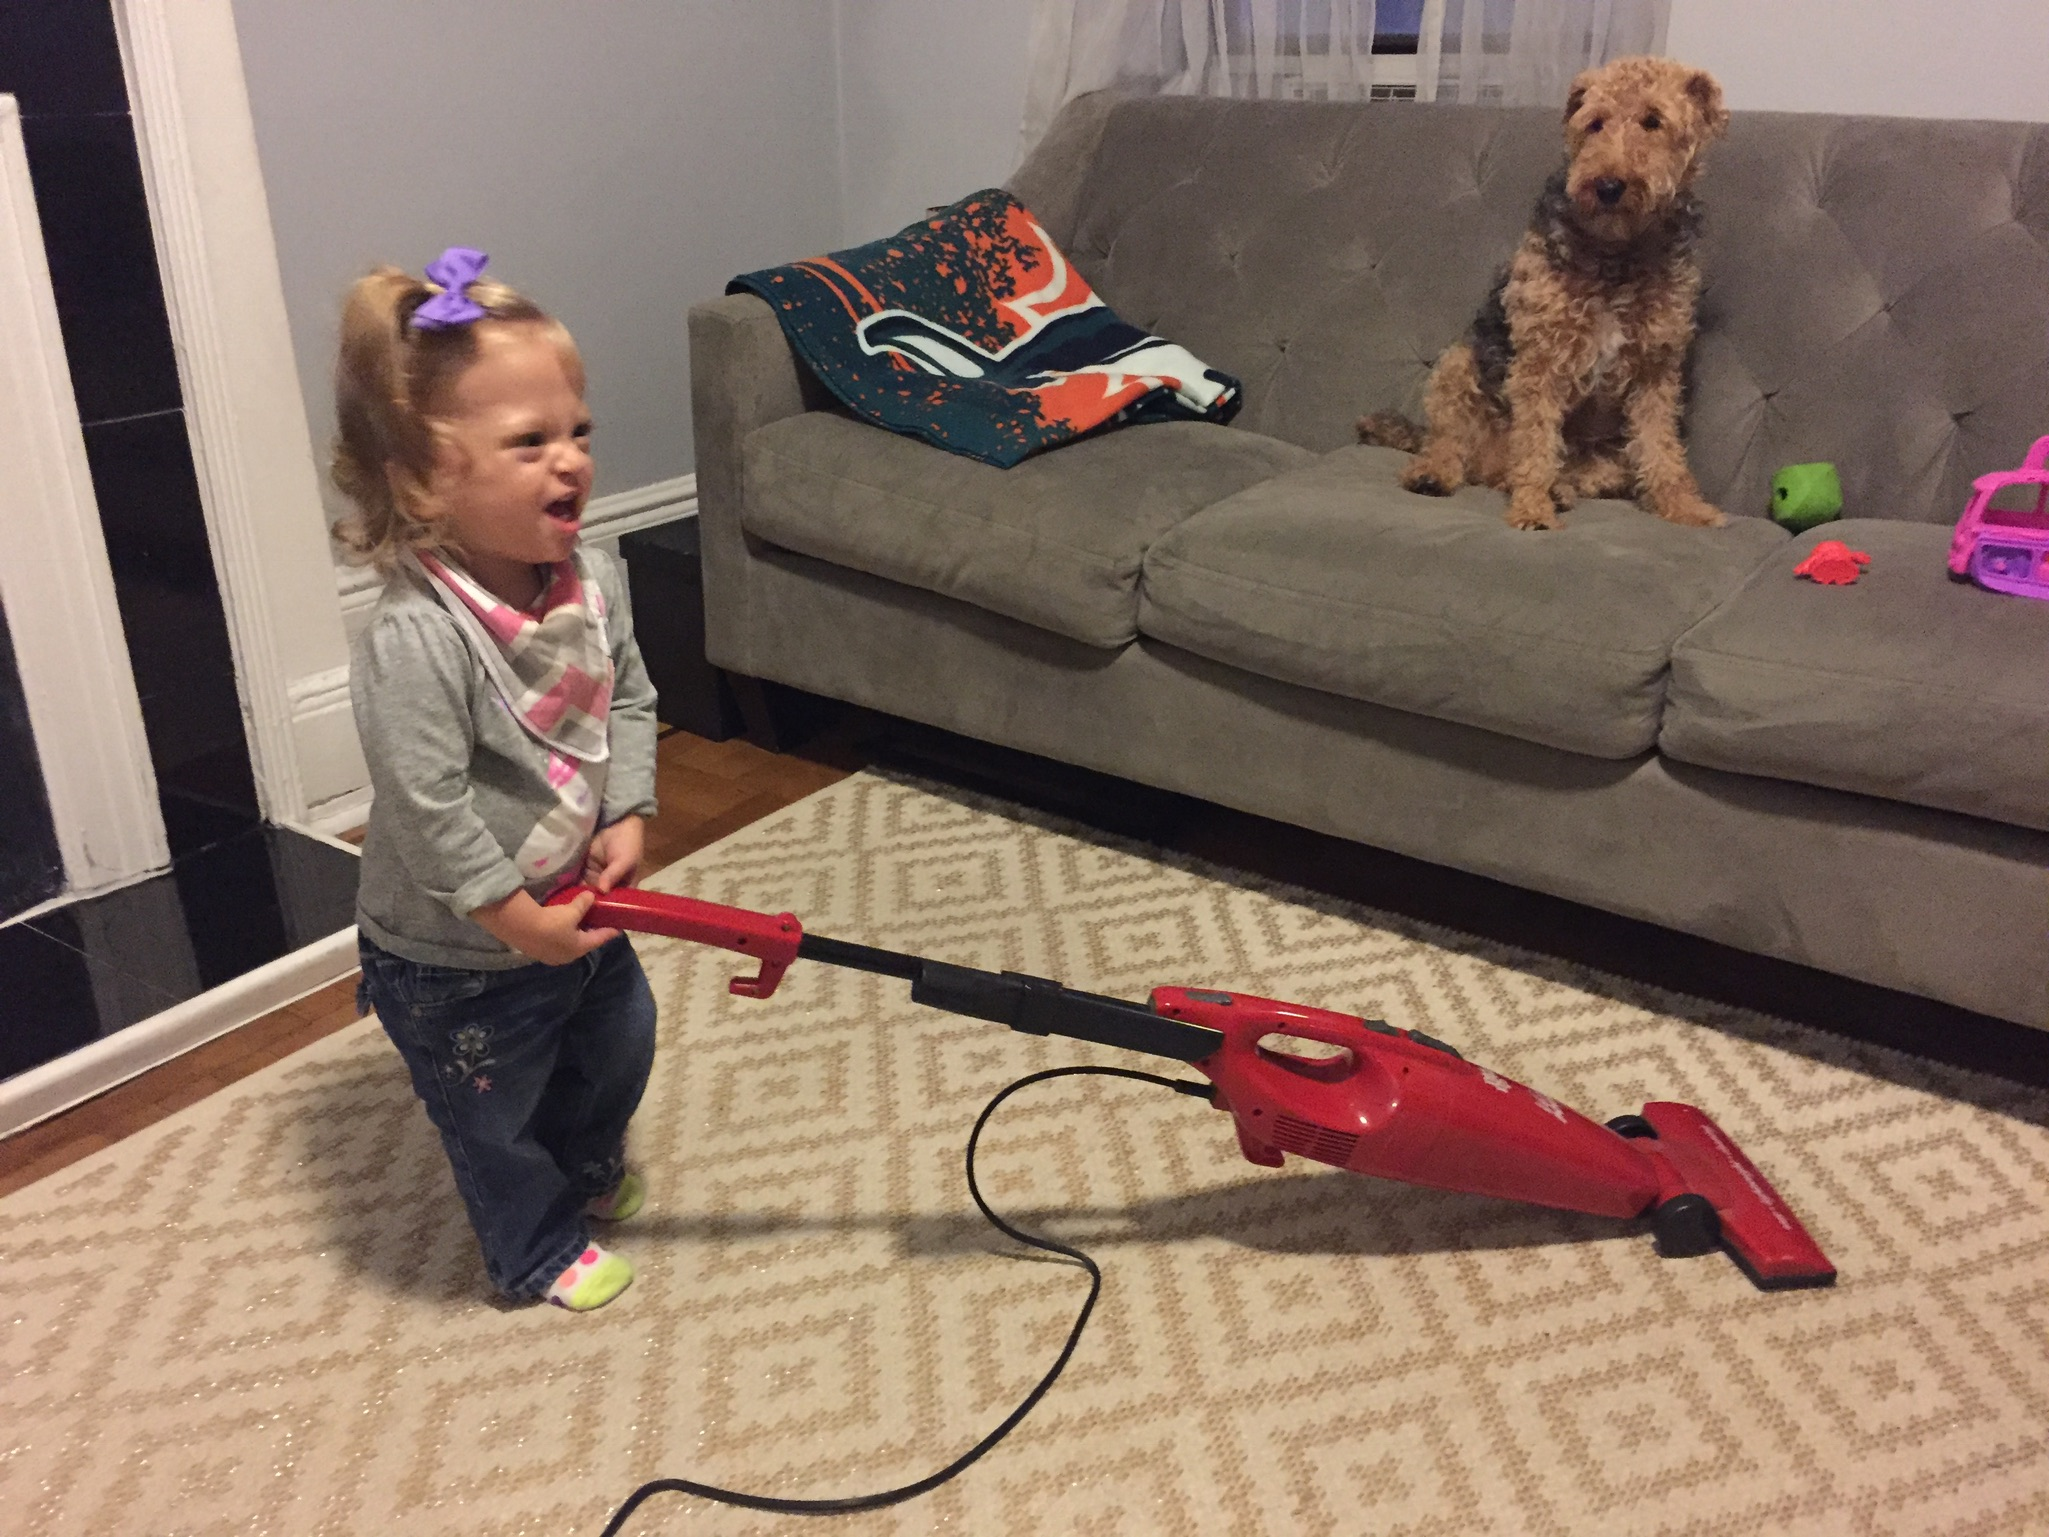 She helped us vacuum the living room too, what a great helper! Bess is terrified. Haha!